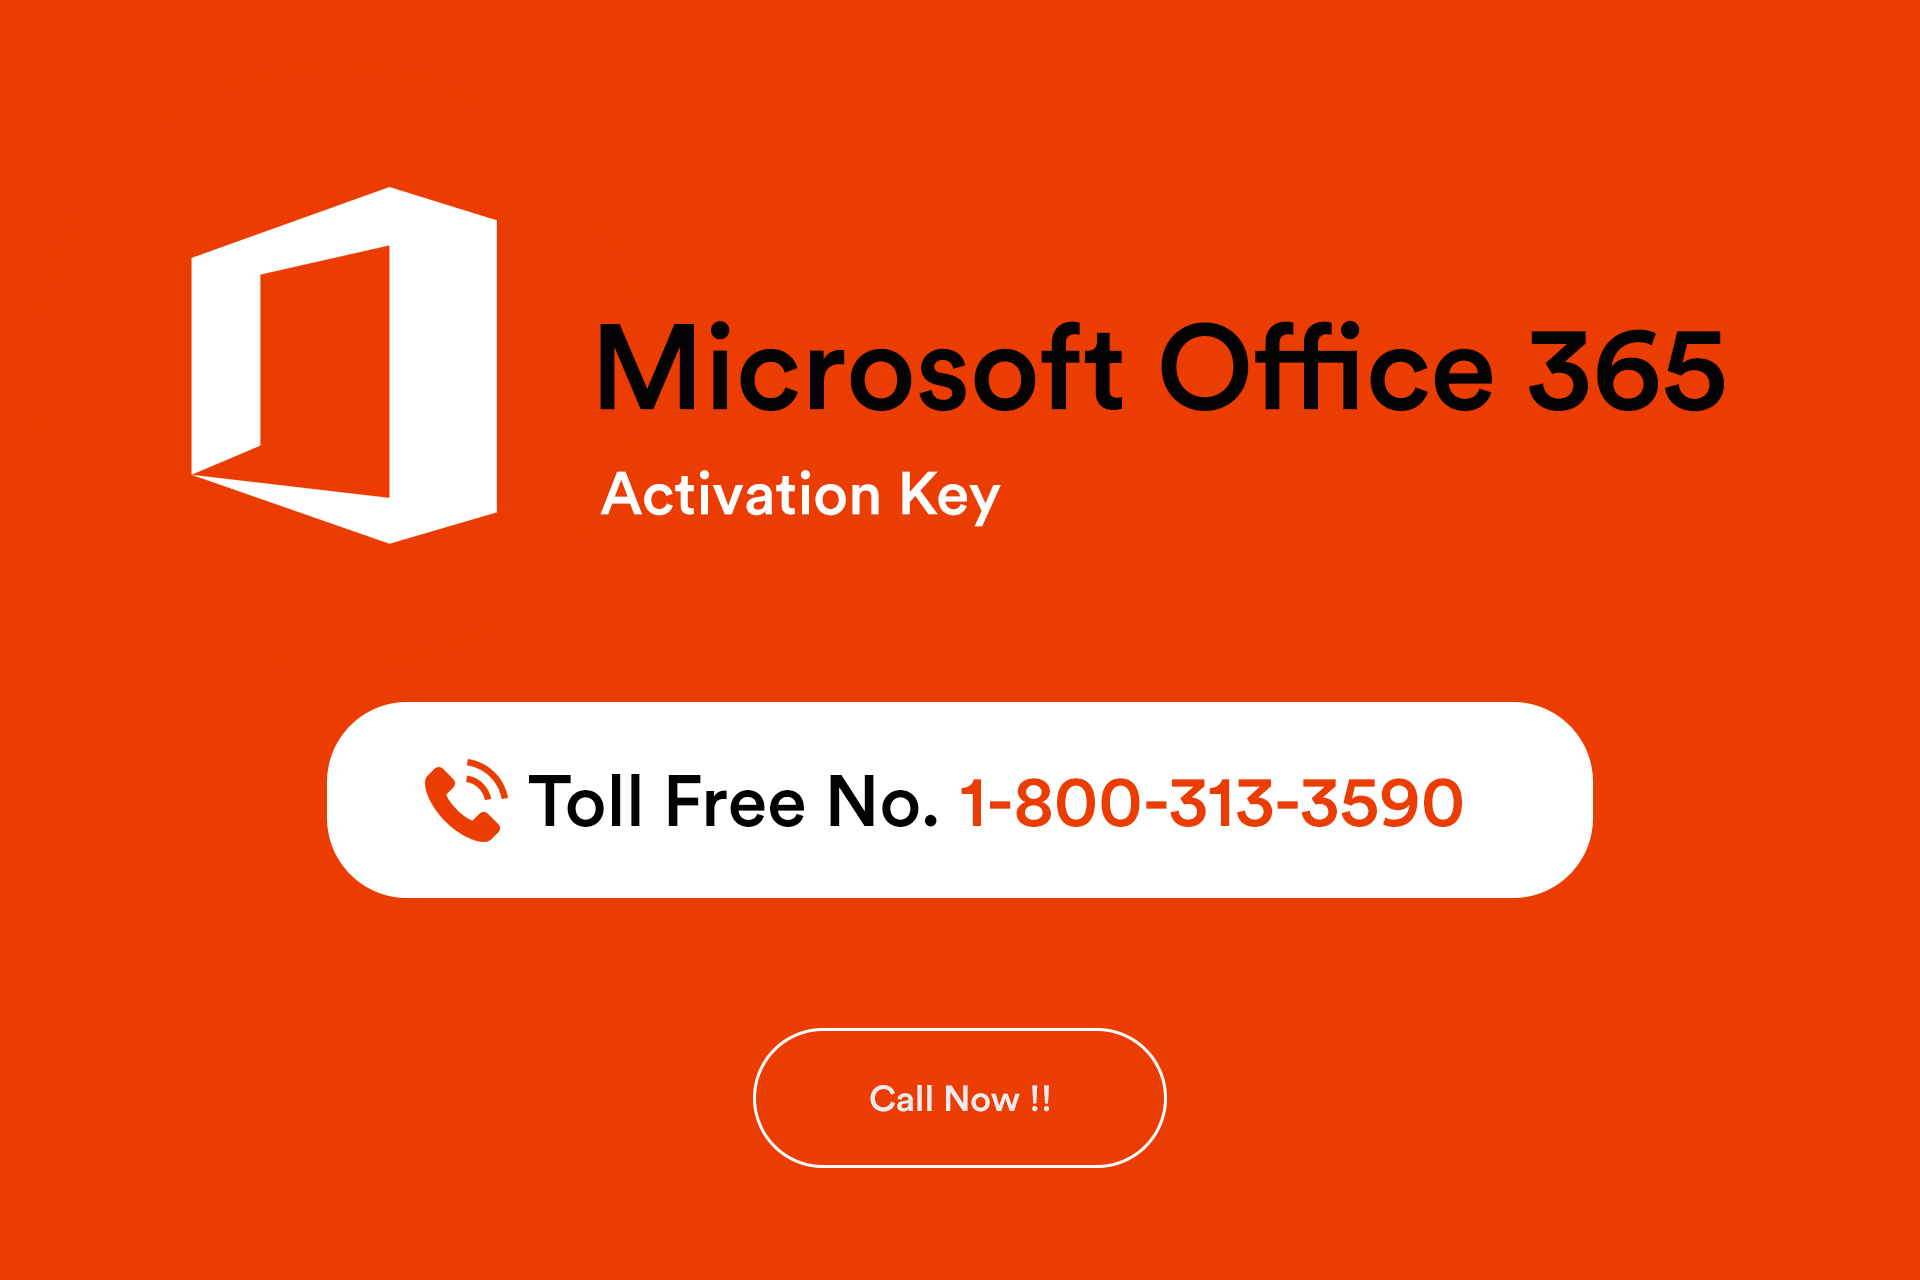 Microsoft Office 365 Activation Key